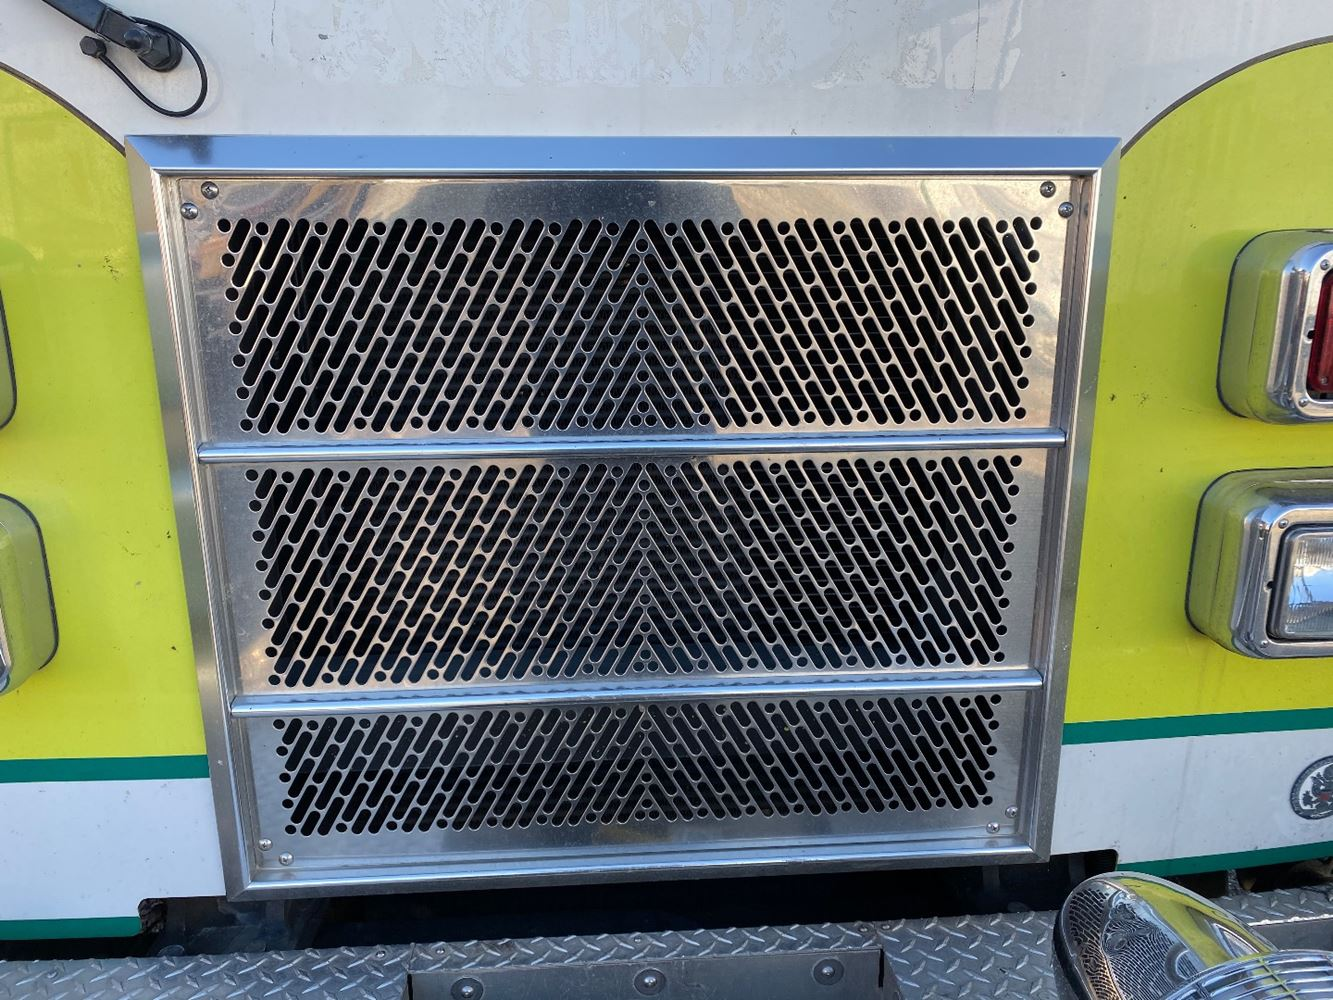 1999 OTHER OTHER GRILLE TRUCK PARTS #687480